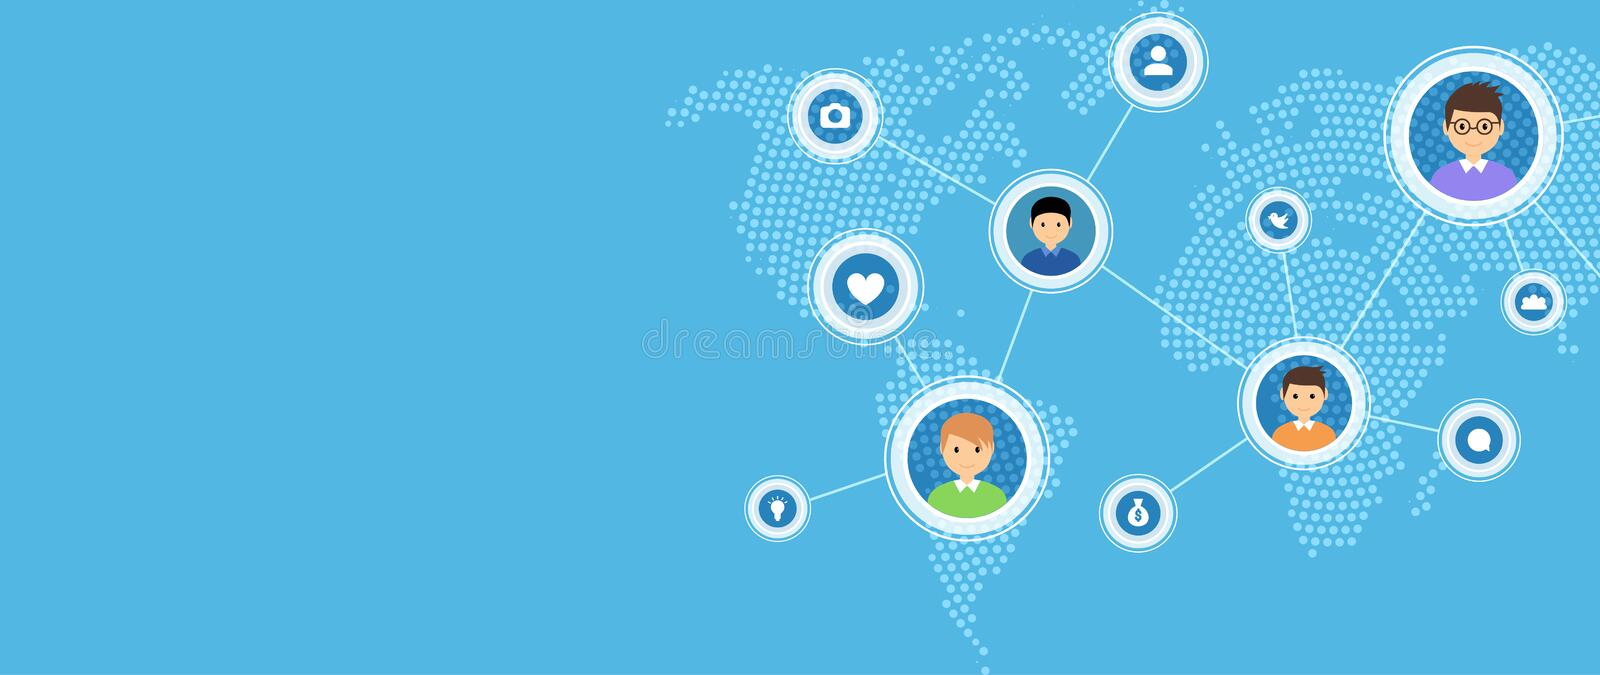 Social media and network connection map concept. World communication people social network illustration.  stock illustration